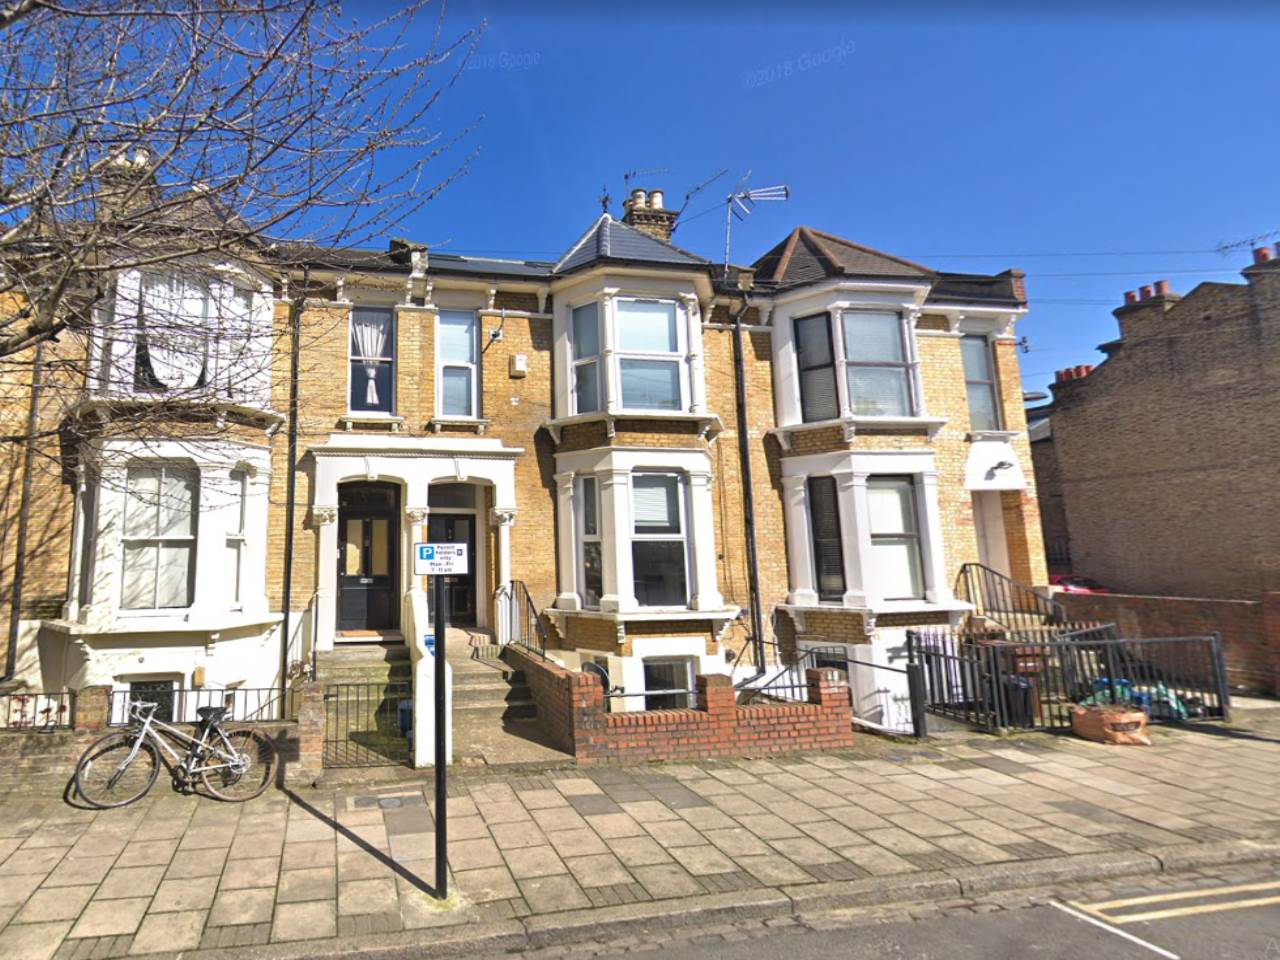 1 bed flat to rent in Hackney, E5